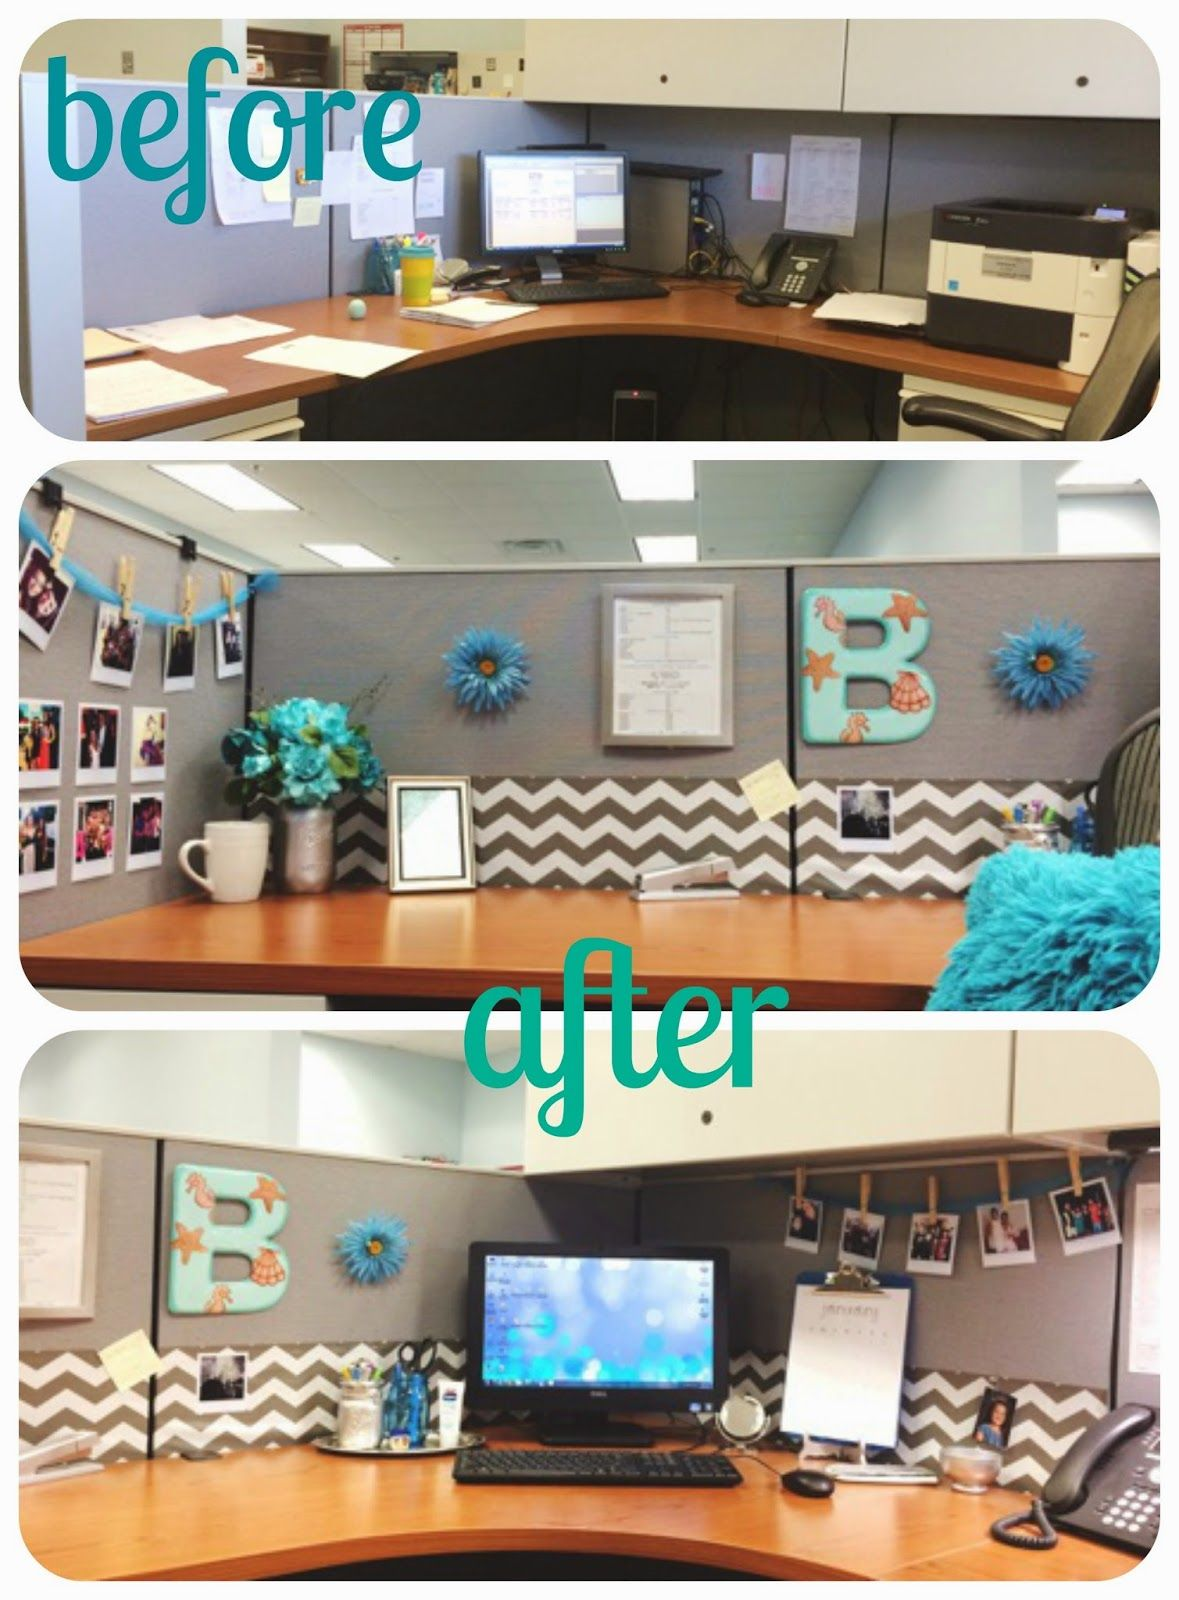 The beetique my office cubicle makeover office decor for Cute cubicle ideas